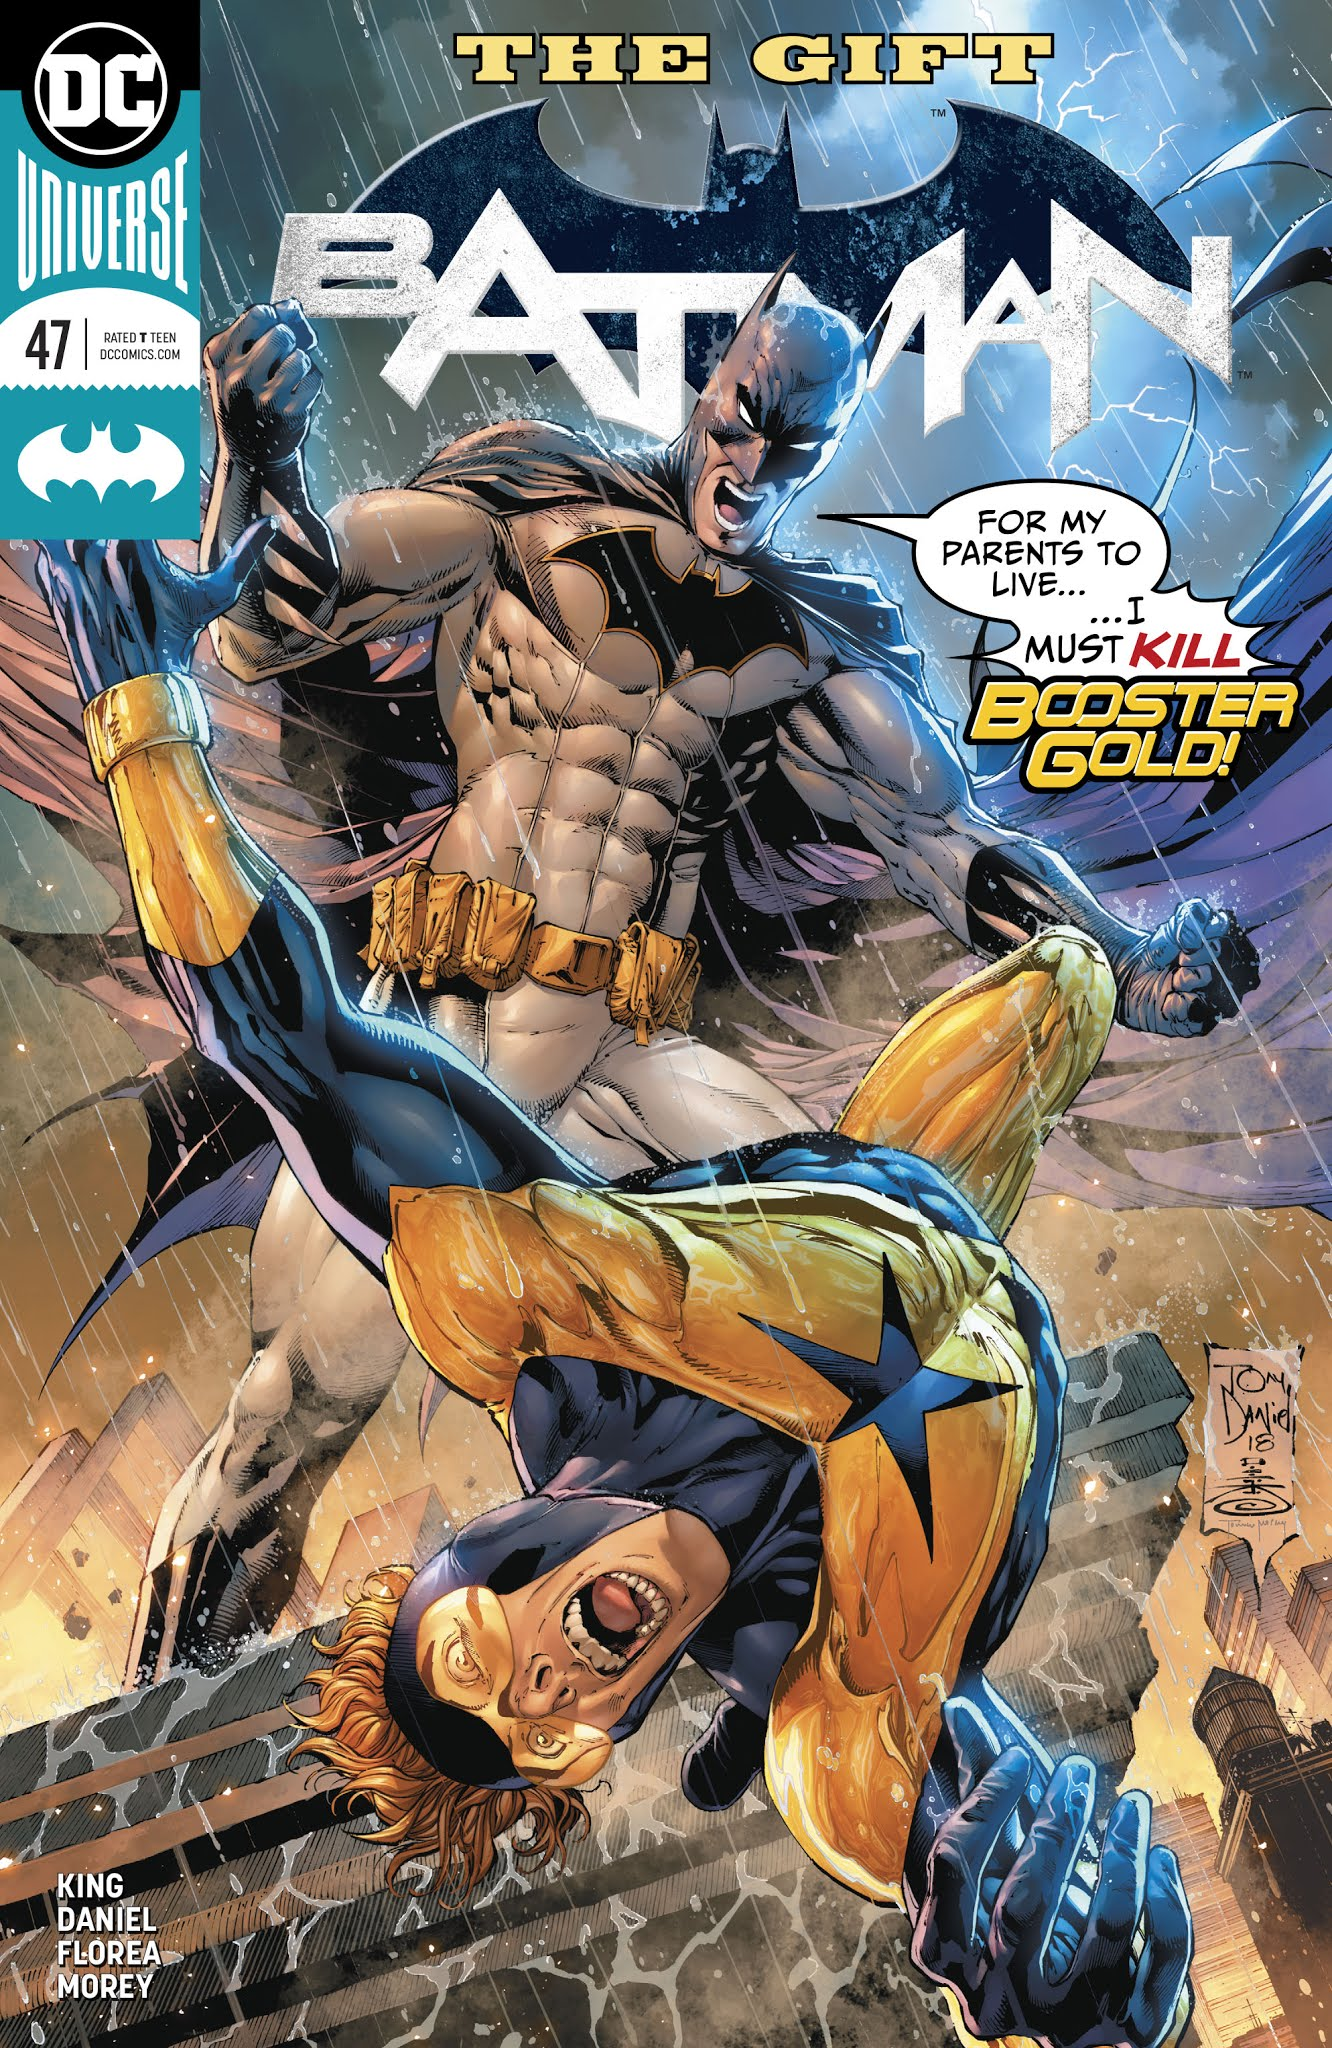 batman 2016 issue 47 read batman 2016 issue 47 comic online in